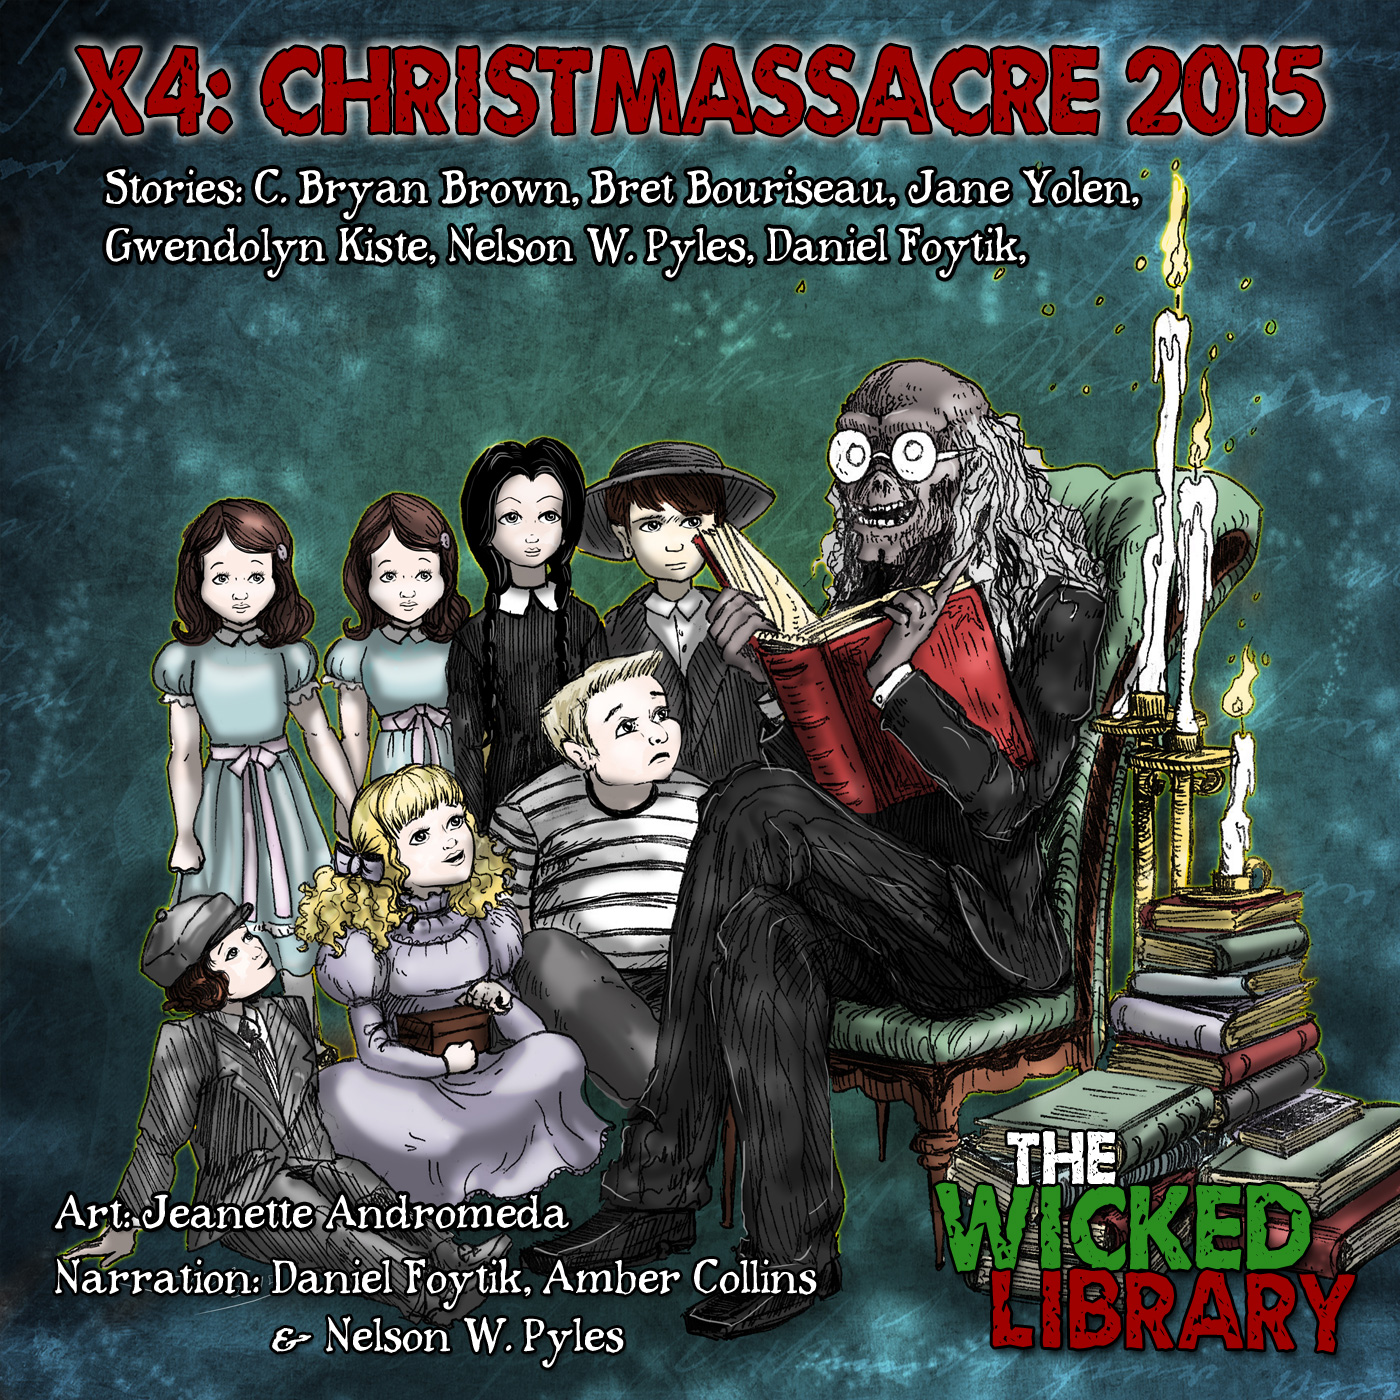 X4: Christmassacre 2015